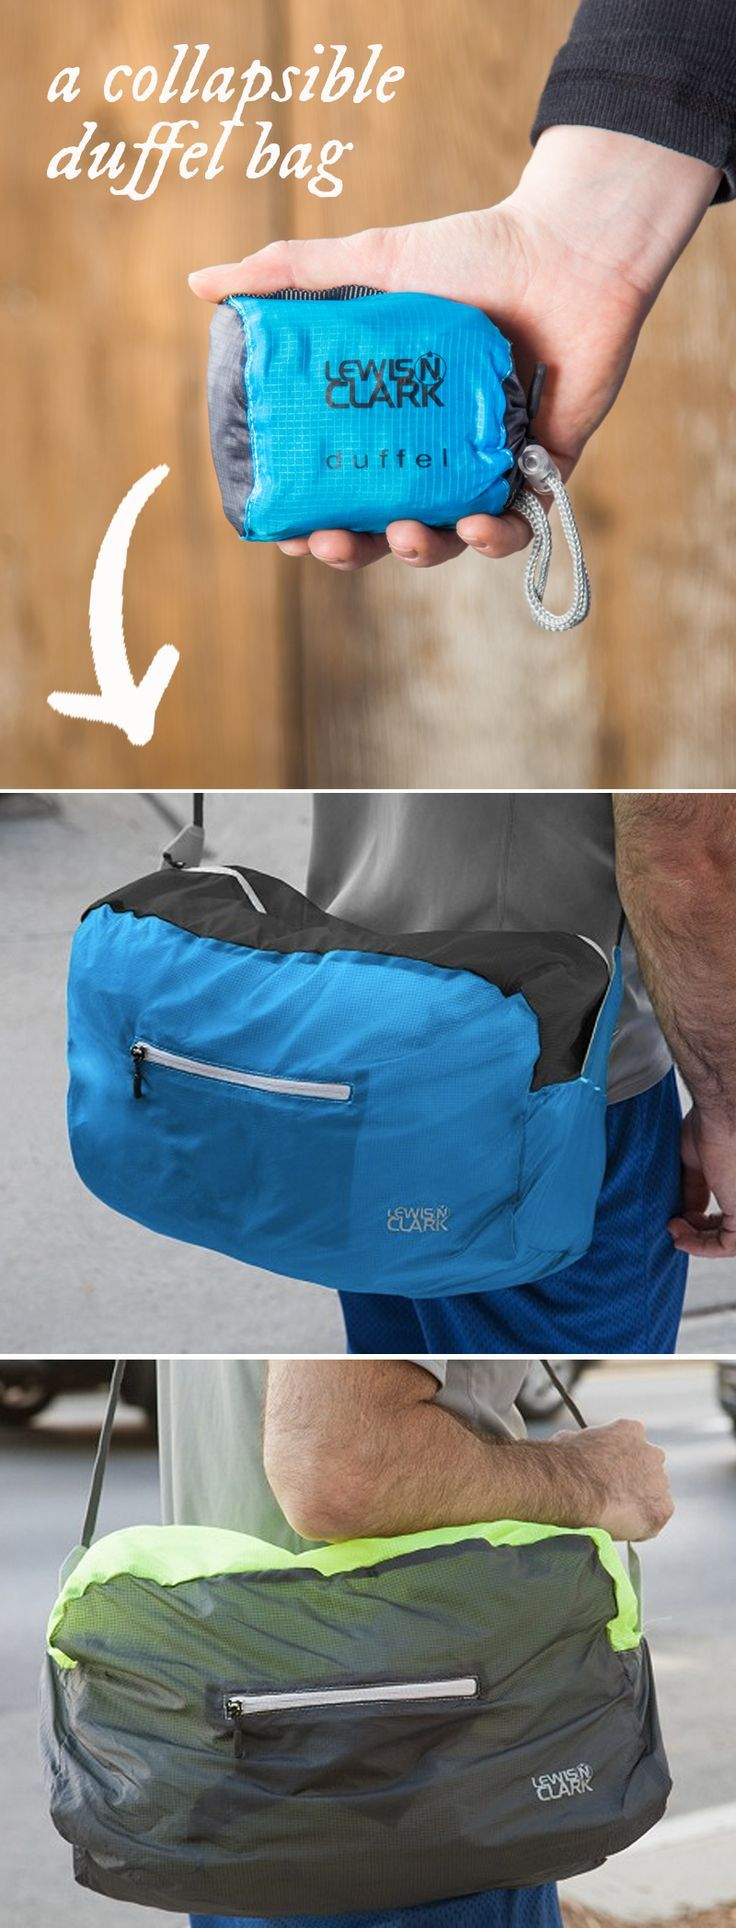 Handy! This duffel folds up small and weighs almost nothing, but is still tough enough for whatever you're toting.